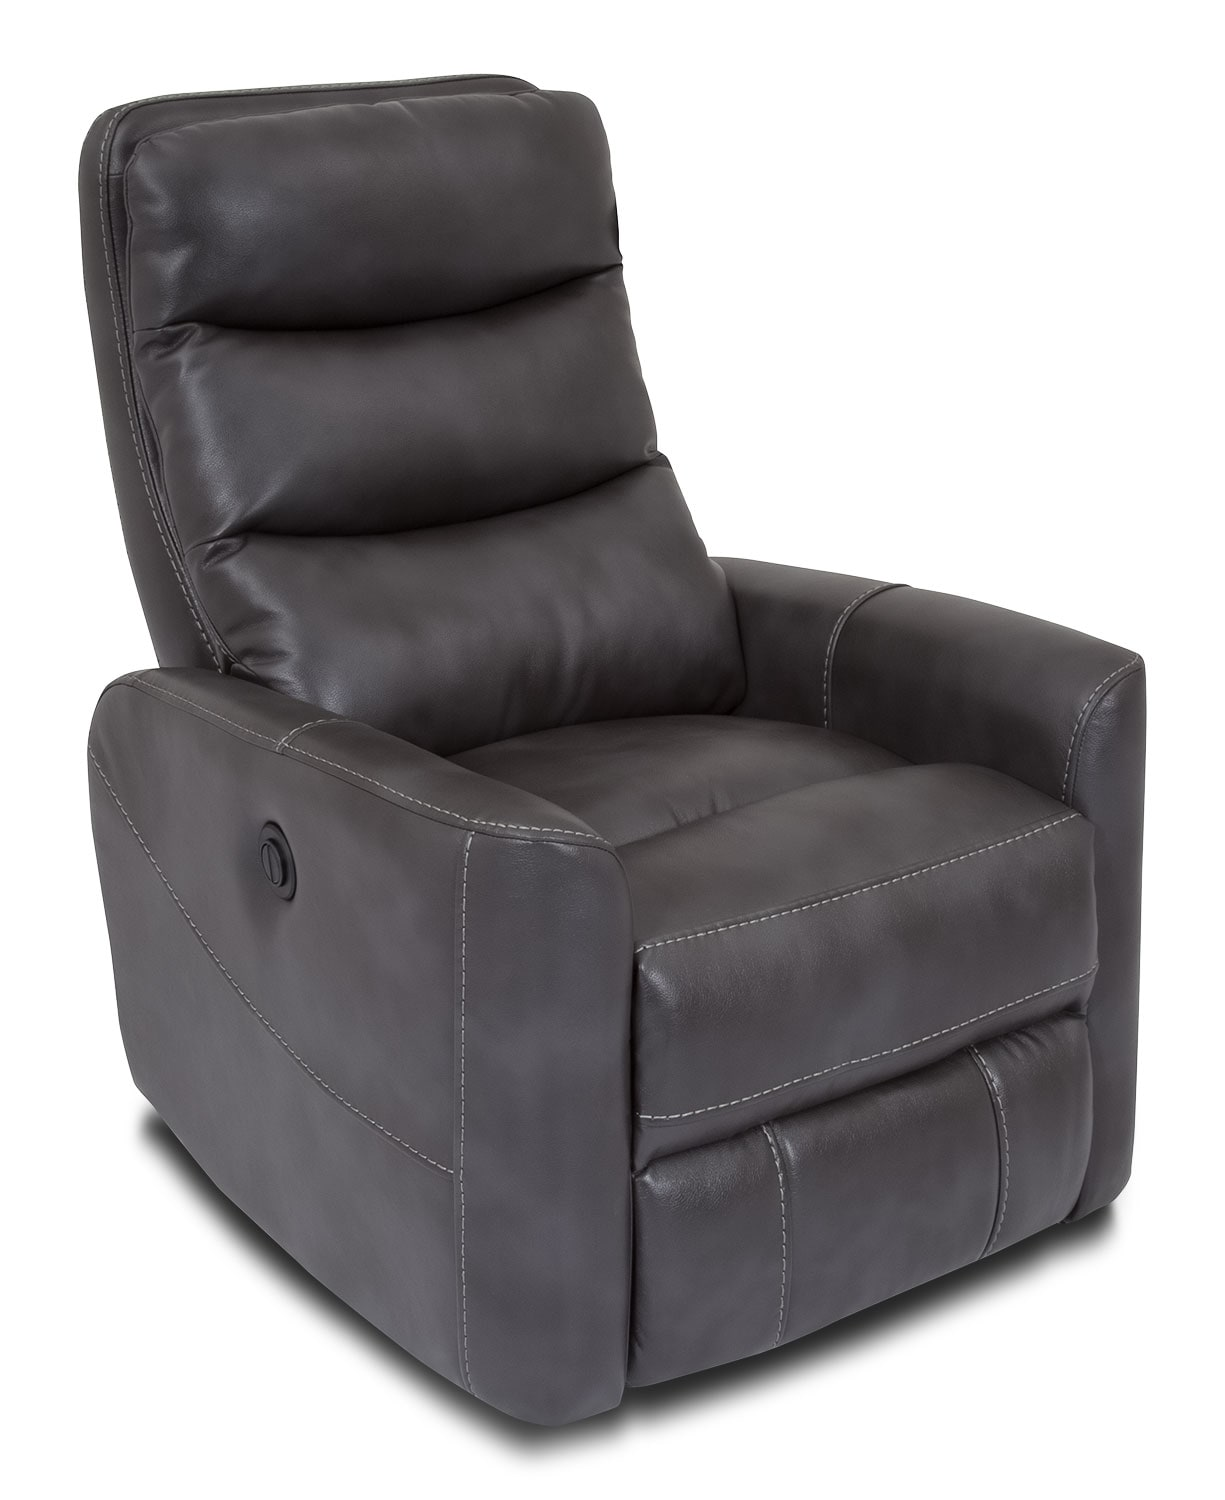 Quinn Leather-Look Fabric Power Recliner – Grey